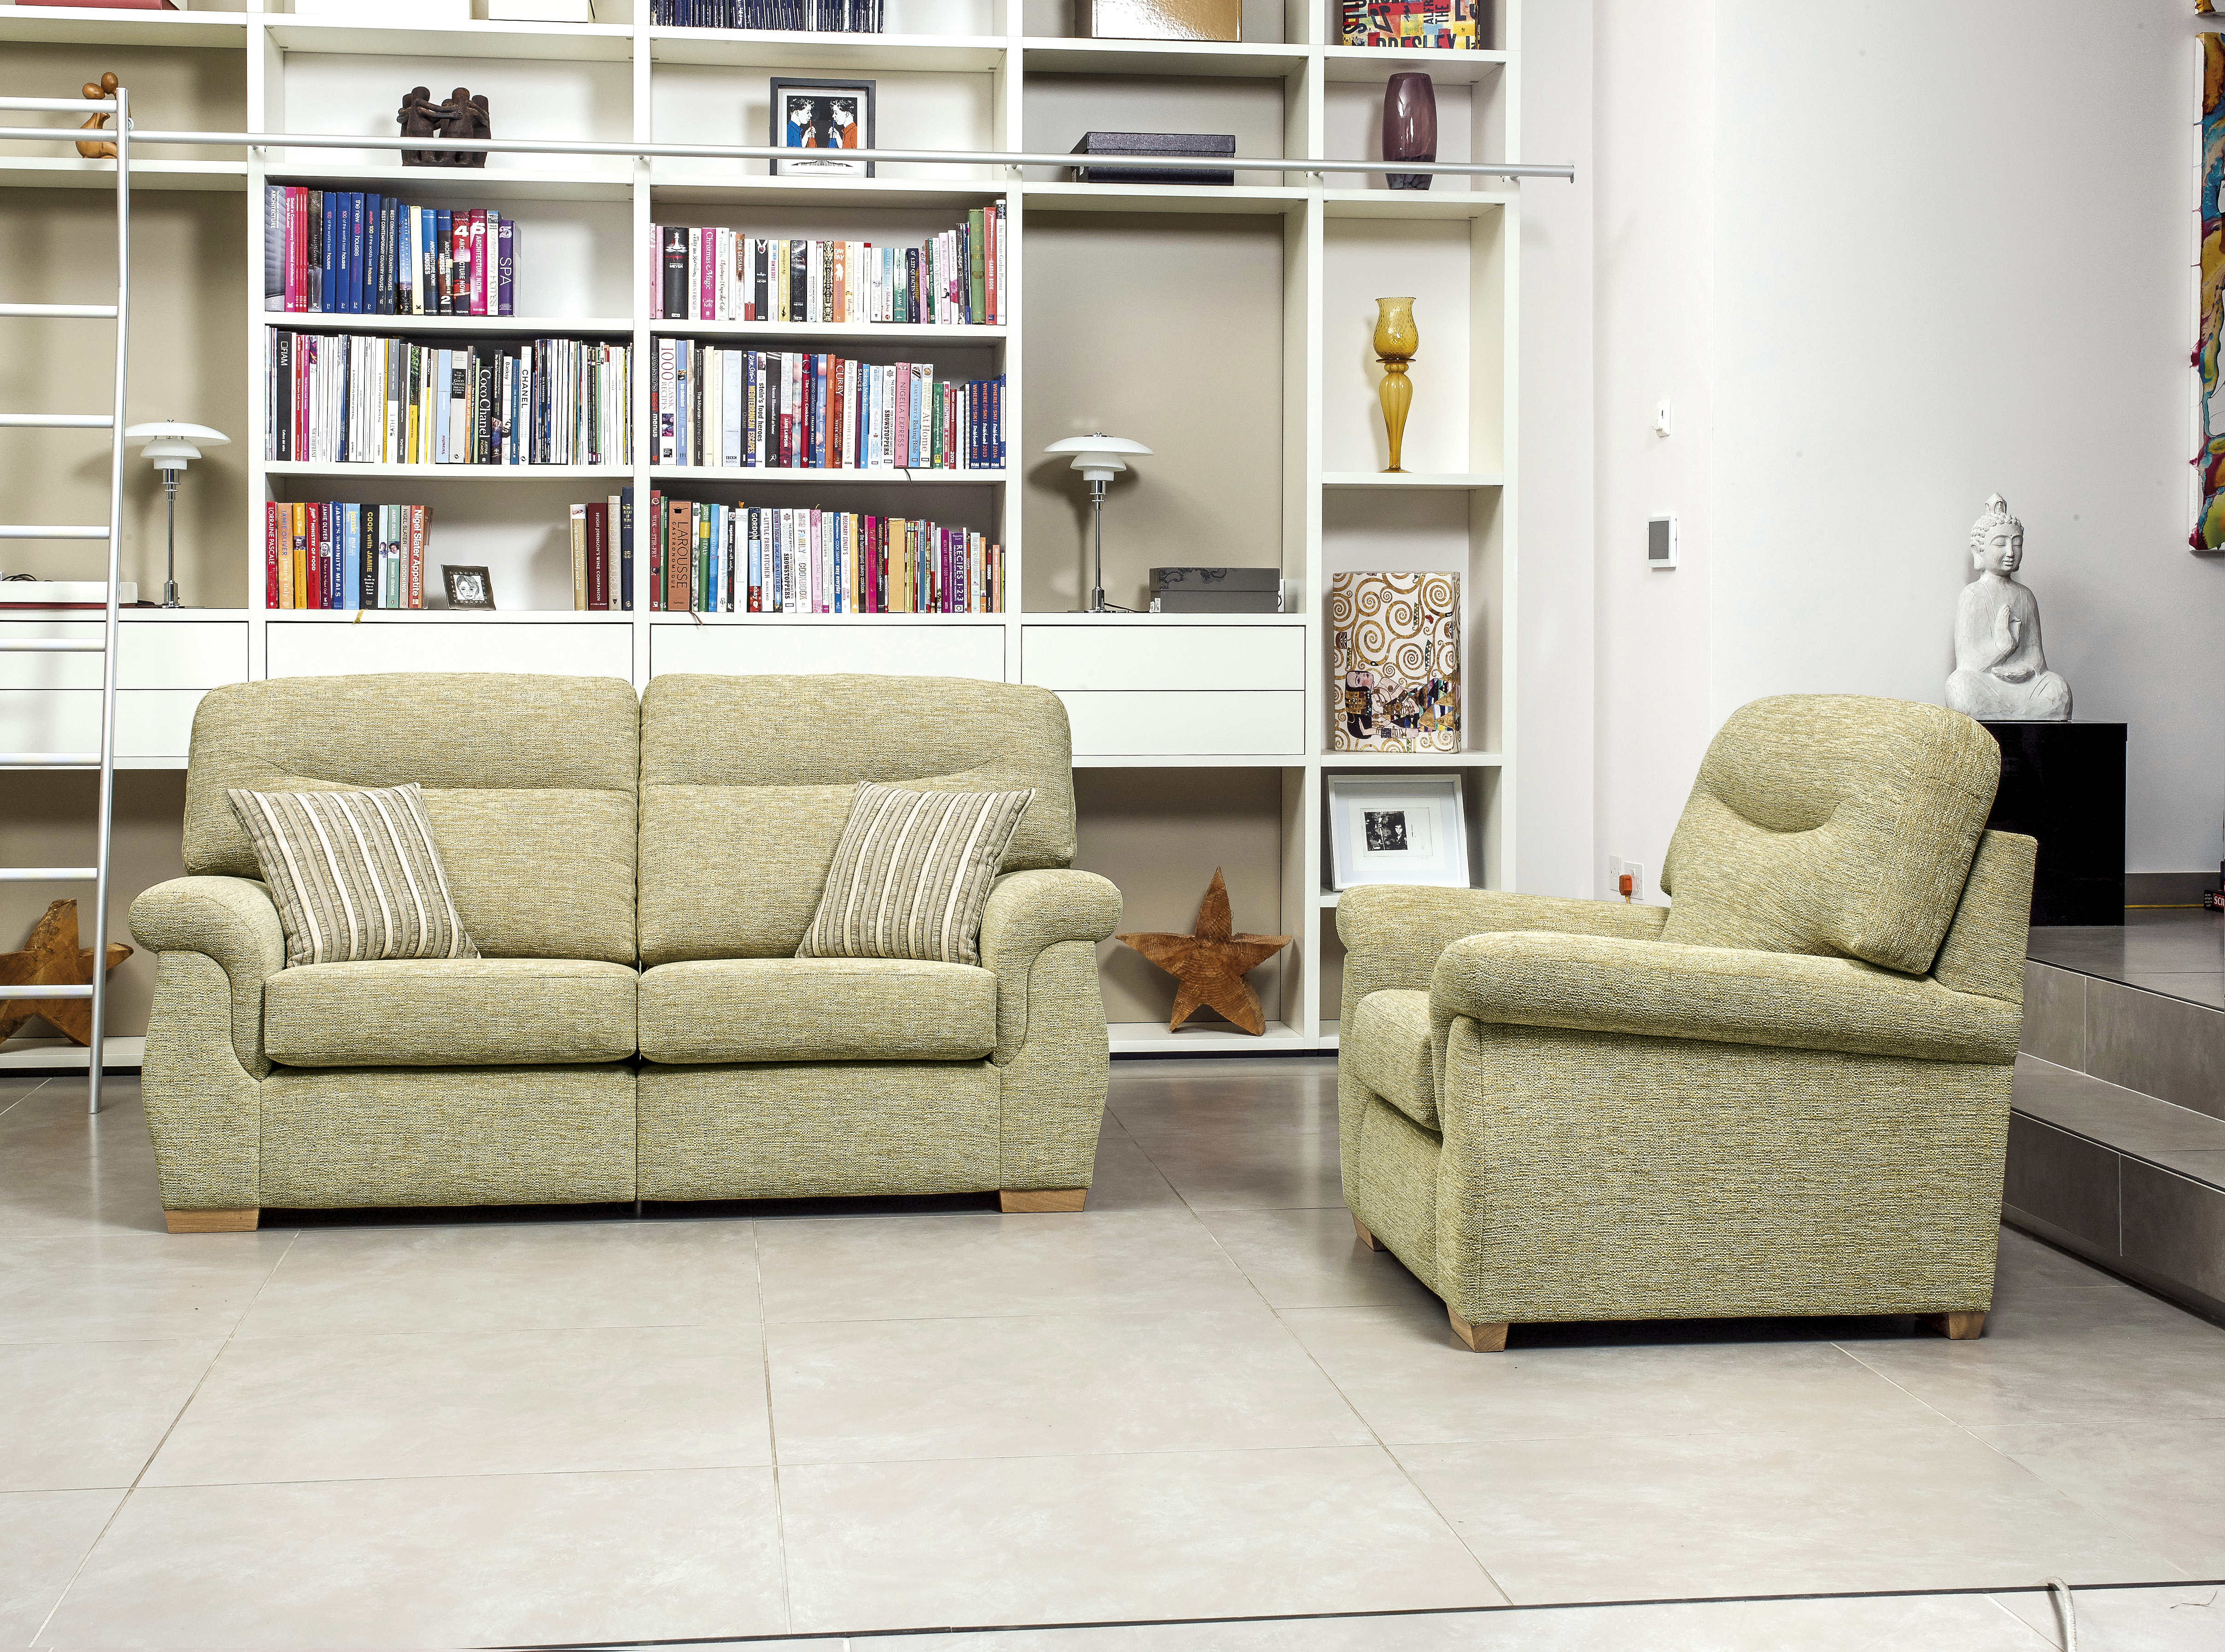 Rembrandt 2-Seater Settee & Chair